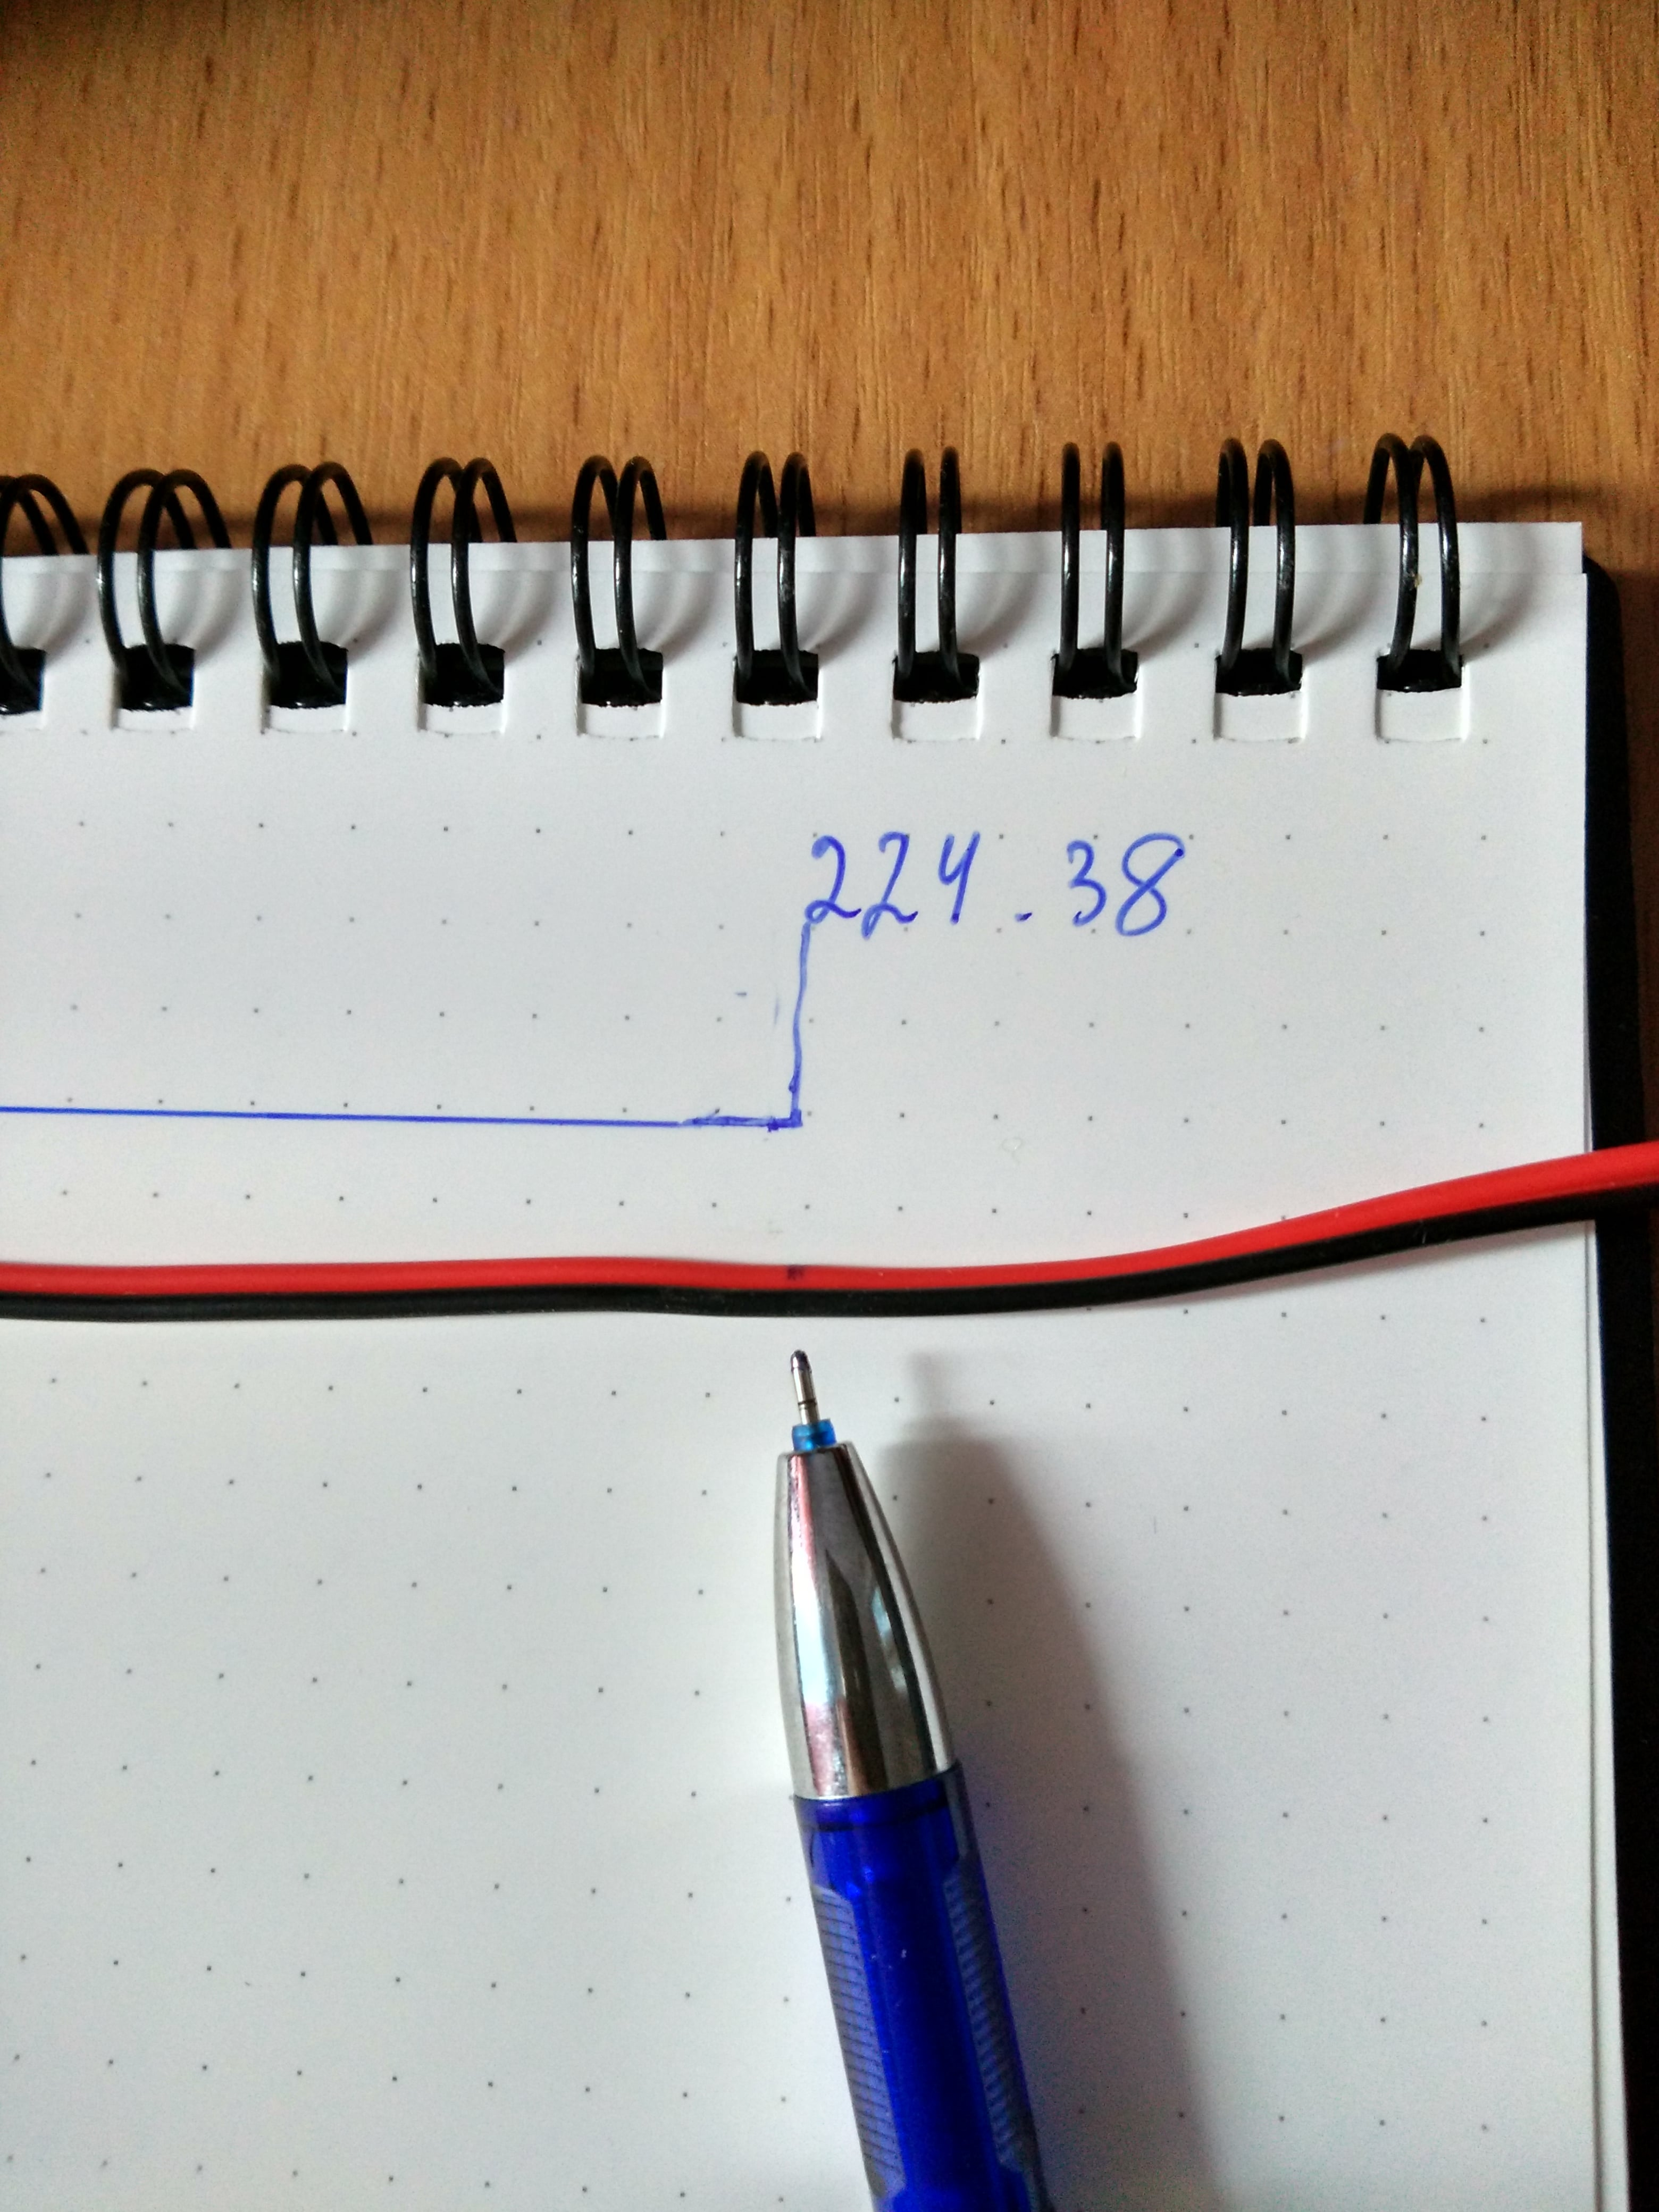 22AWG next to segment in notebook